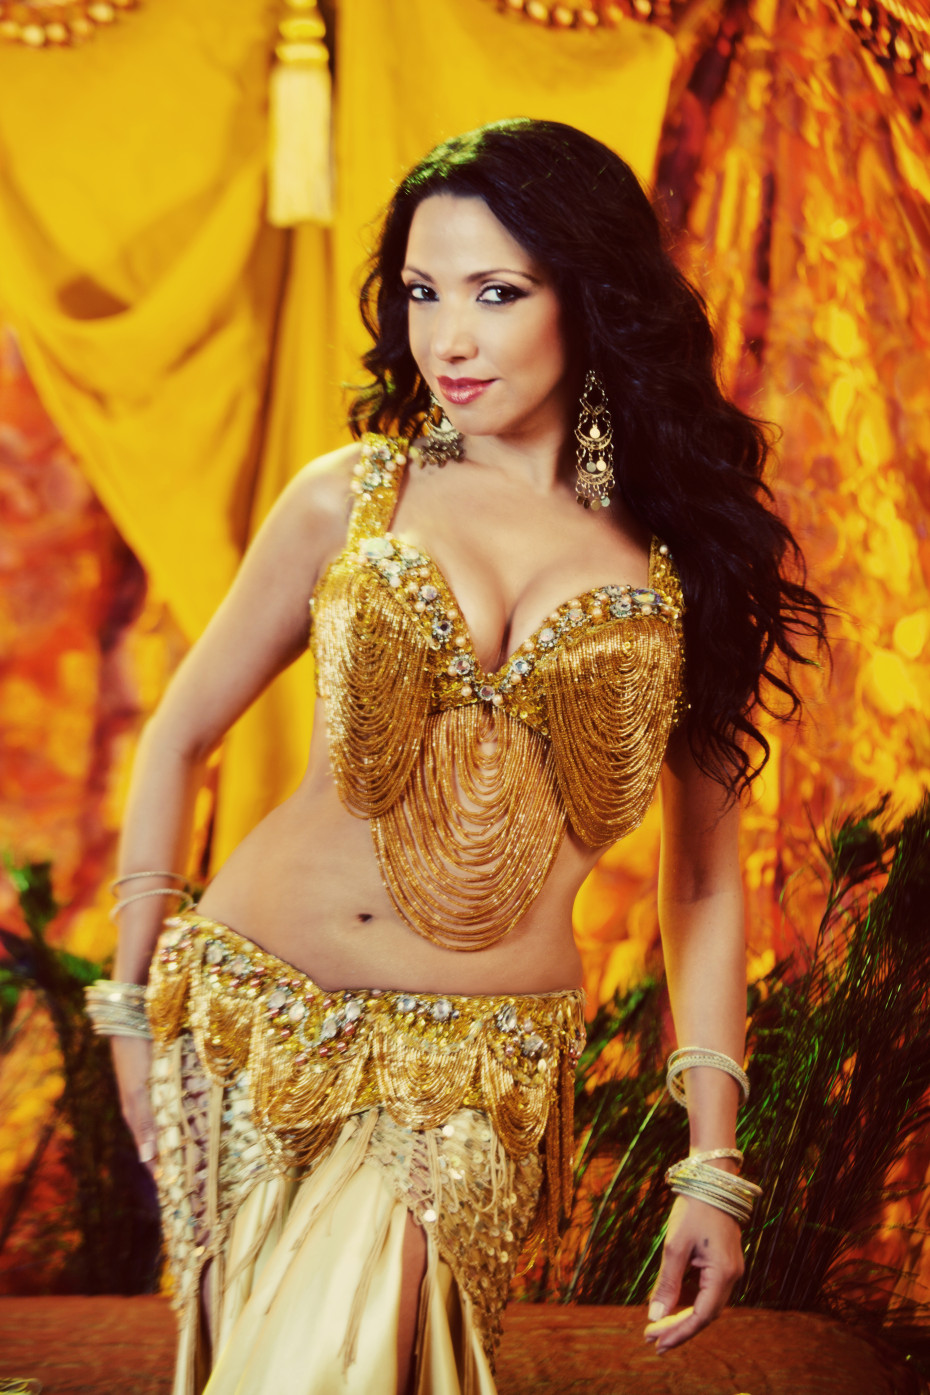 Sira in a luscious gold bellydance costume, dripping with gems and fringe.